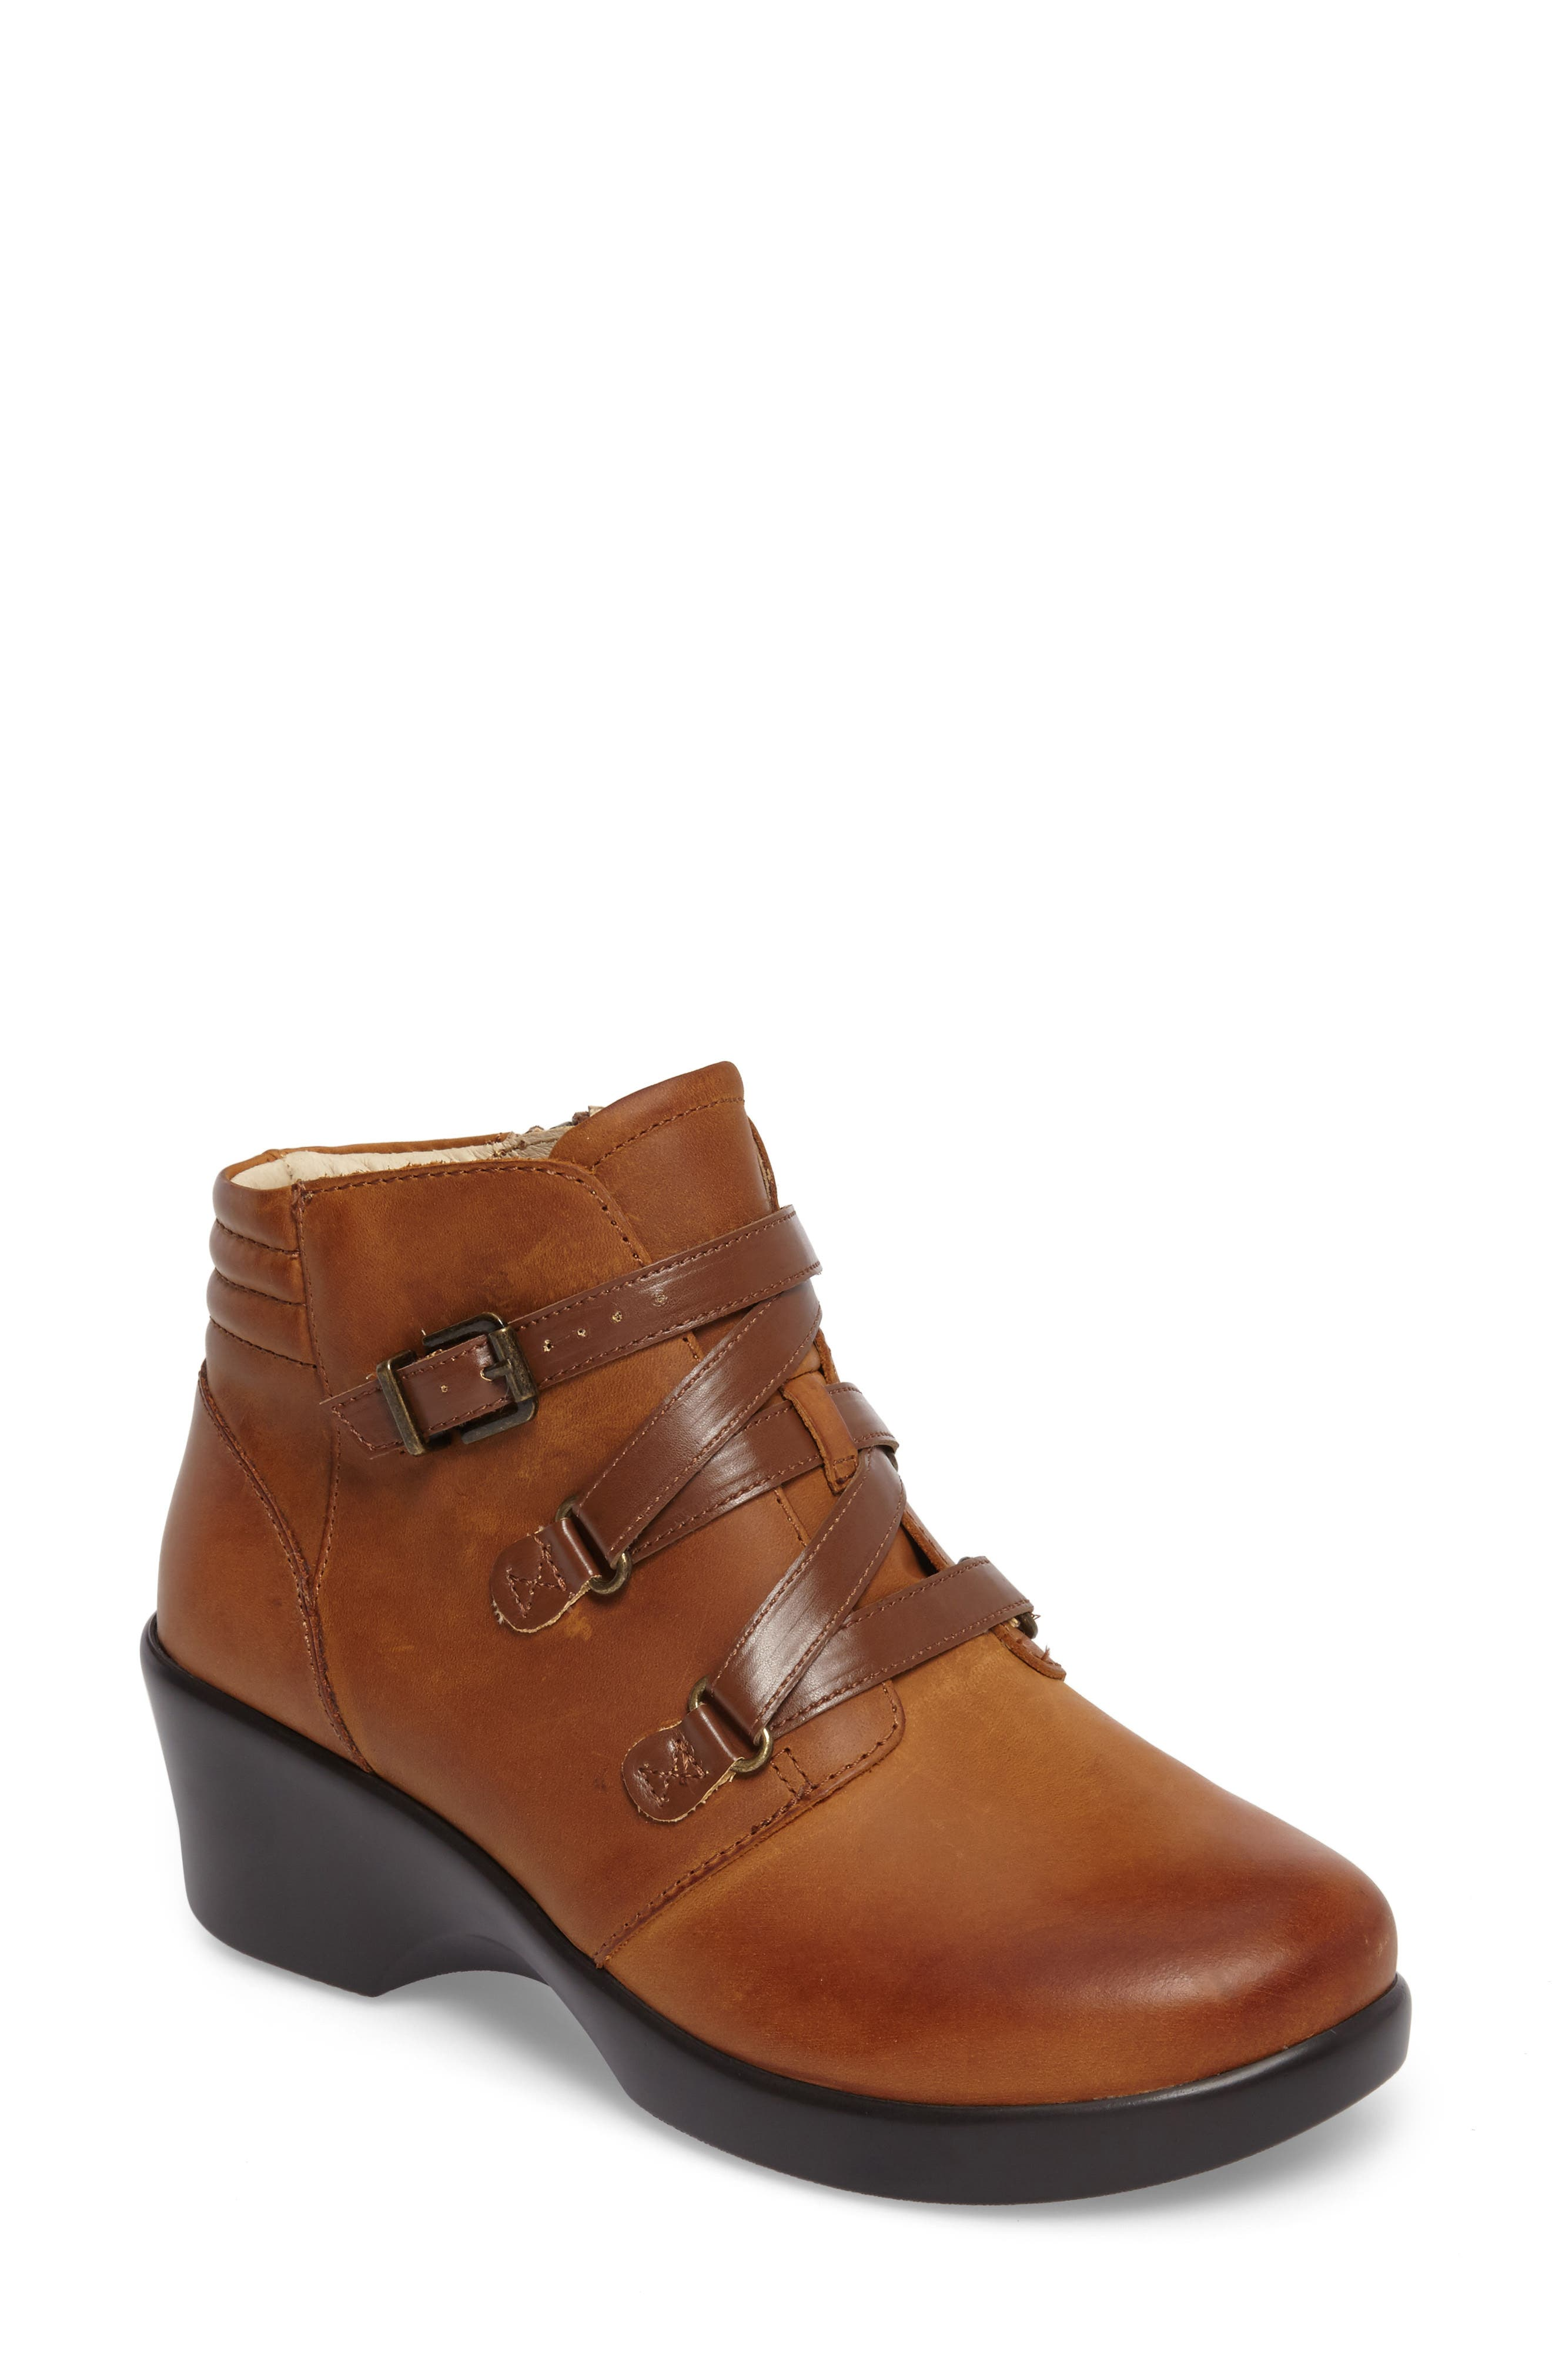 Indi Demi Wedge Bootie,                         Main,                         color, Walnut Leather